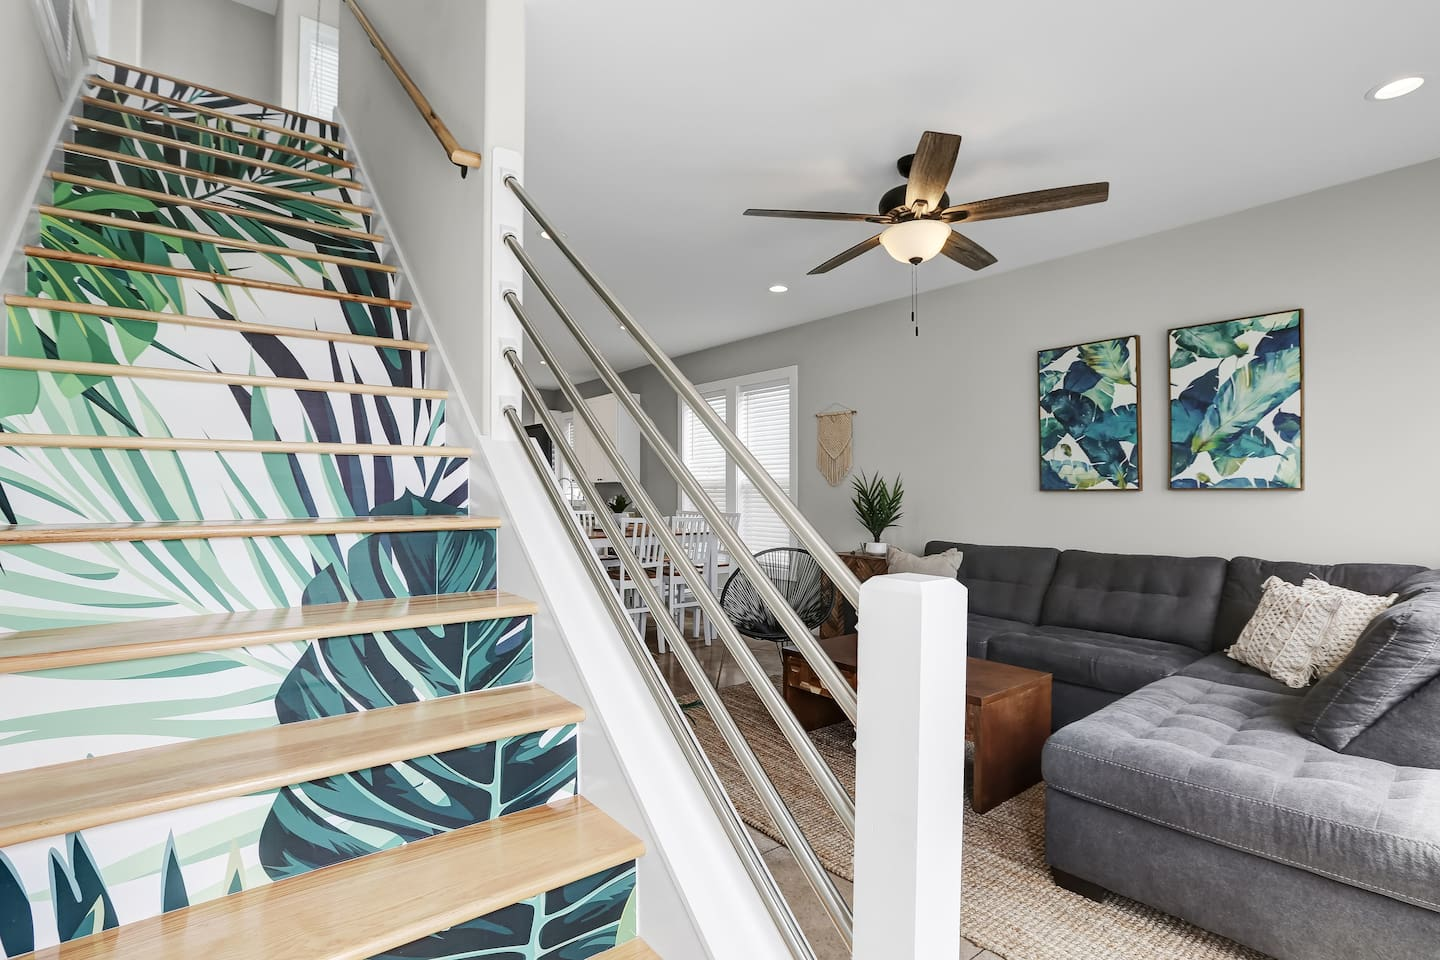 The palm print staircase will steal your attention right when you enter this brand new home!